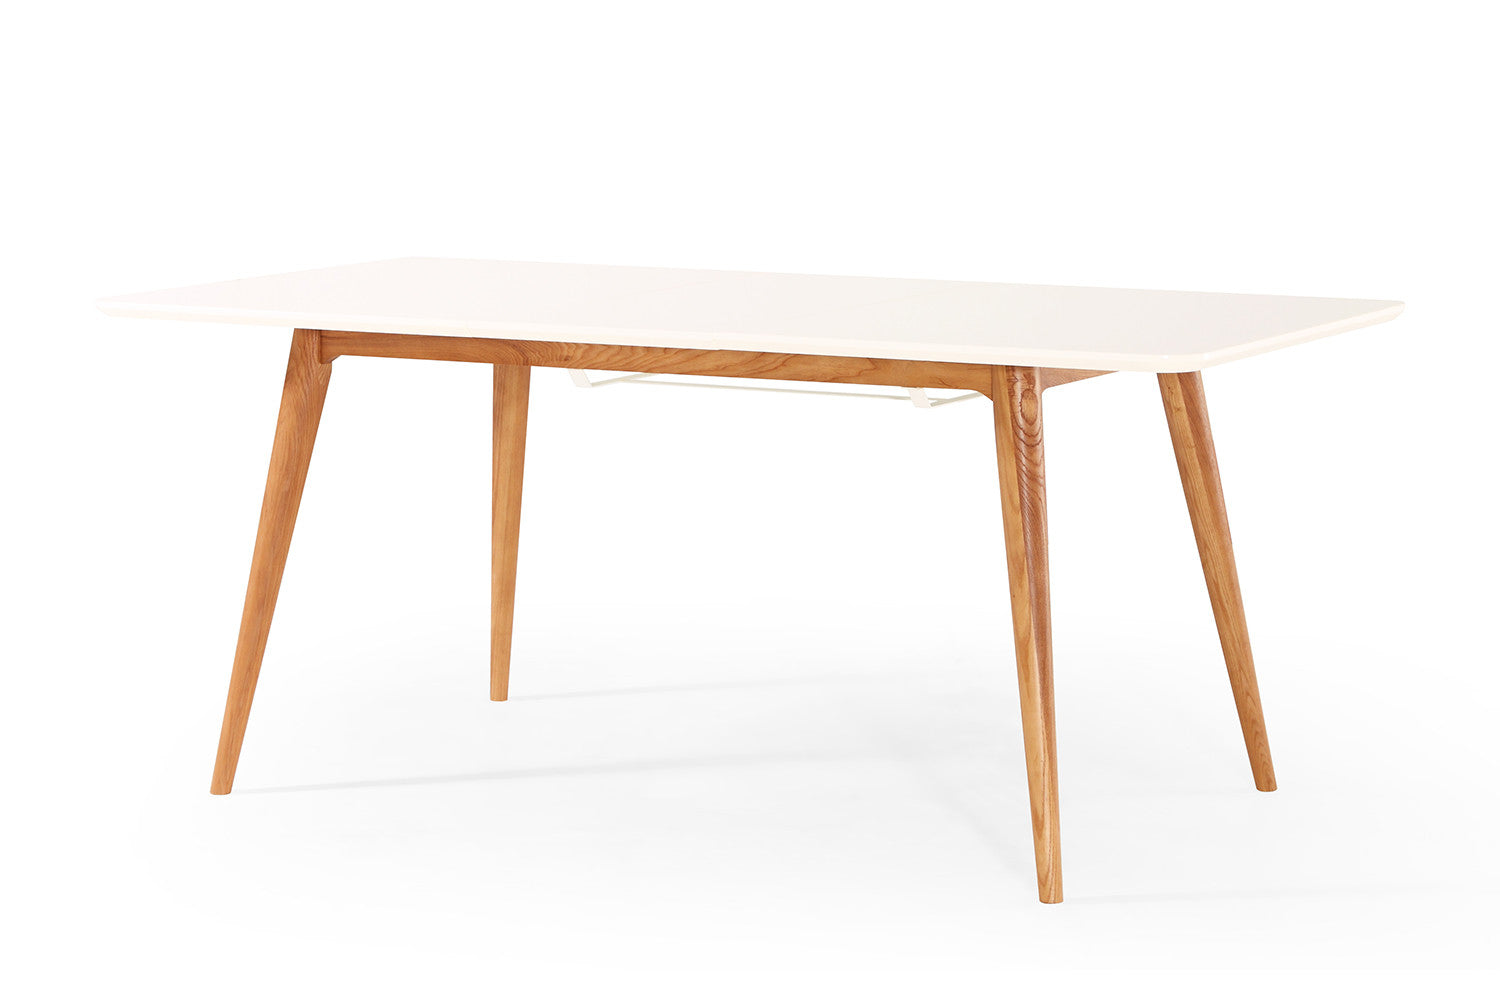 Table salle a manger scandinave extensible for Table de salle a manger nexus